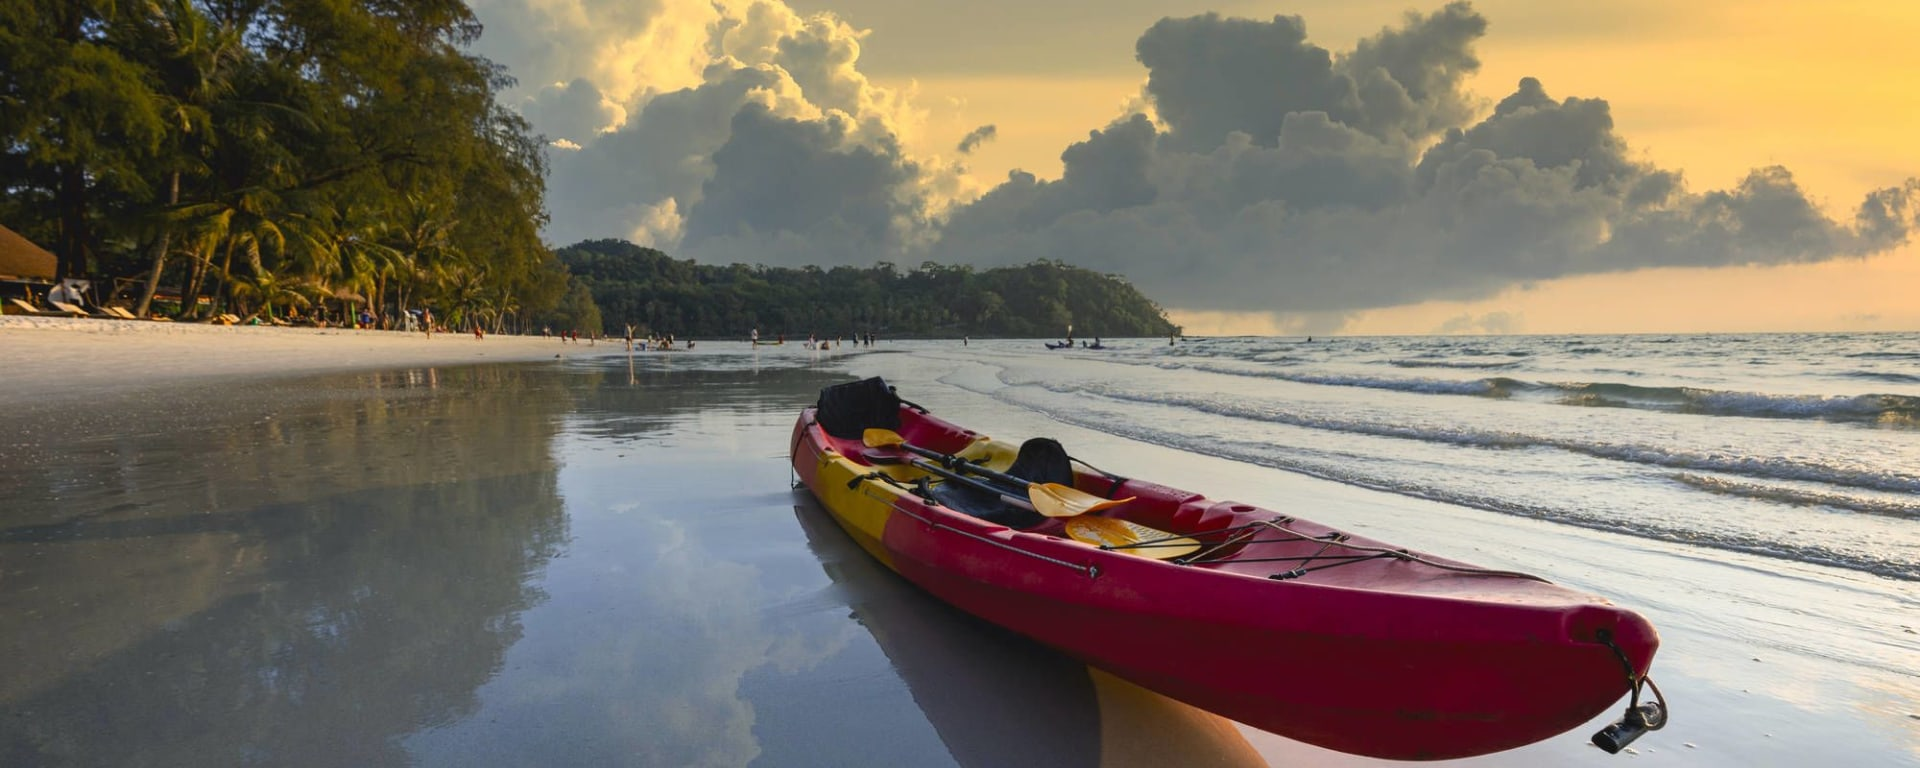 Individuelles Inselhüpfen im Golf von Thailand ab Ko Chang: Ko Kood Red kayak at the beach by the sea in the evening